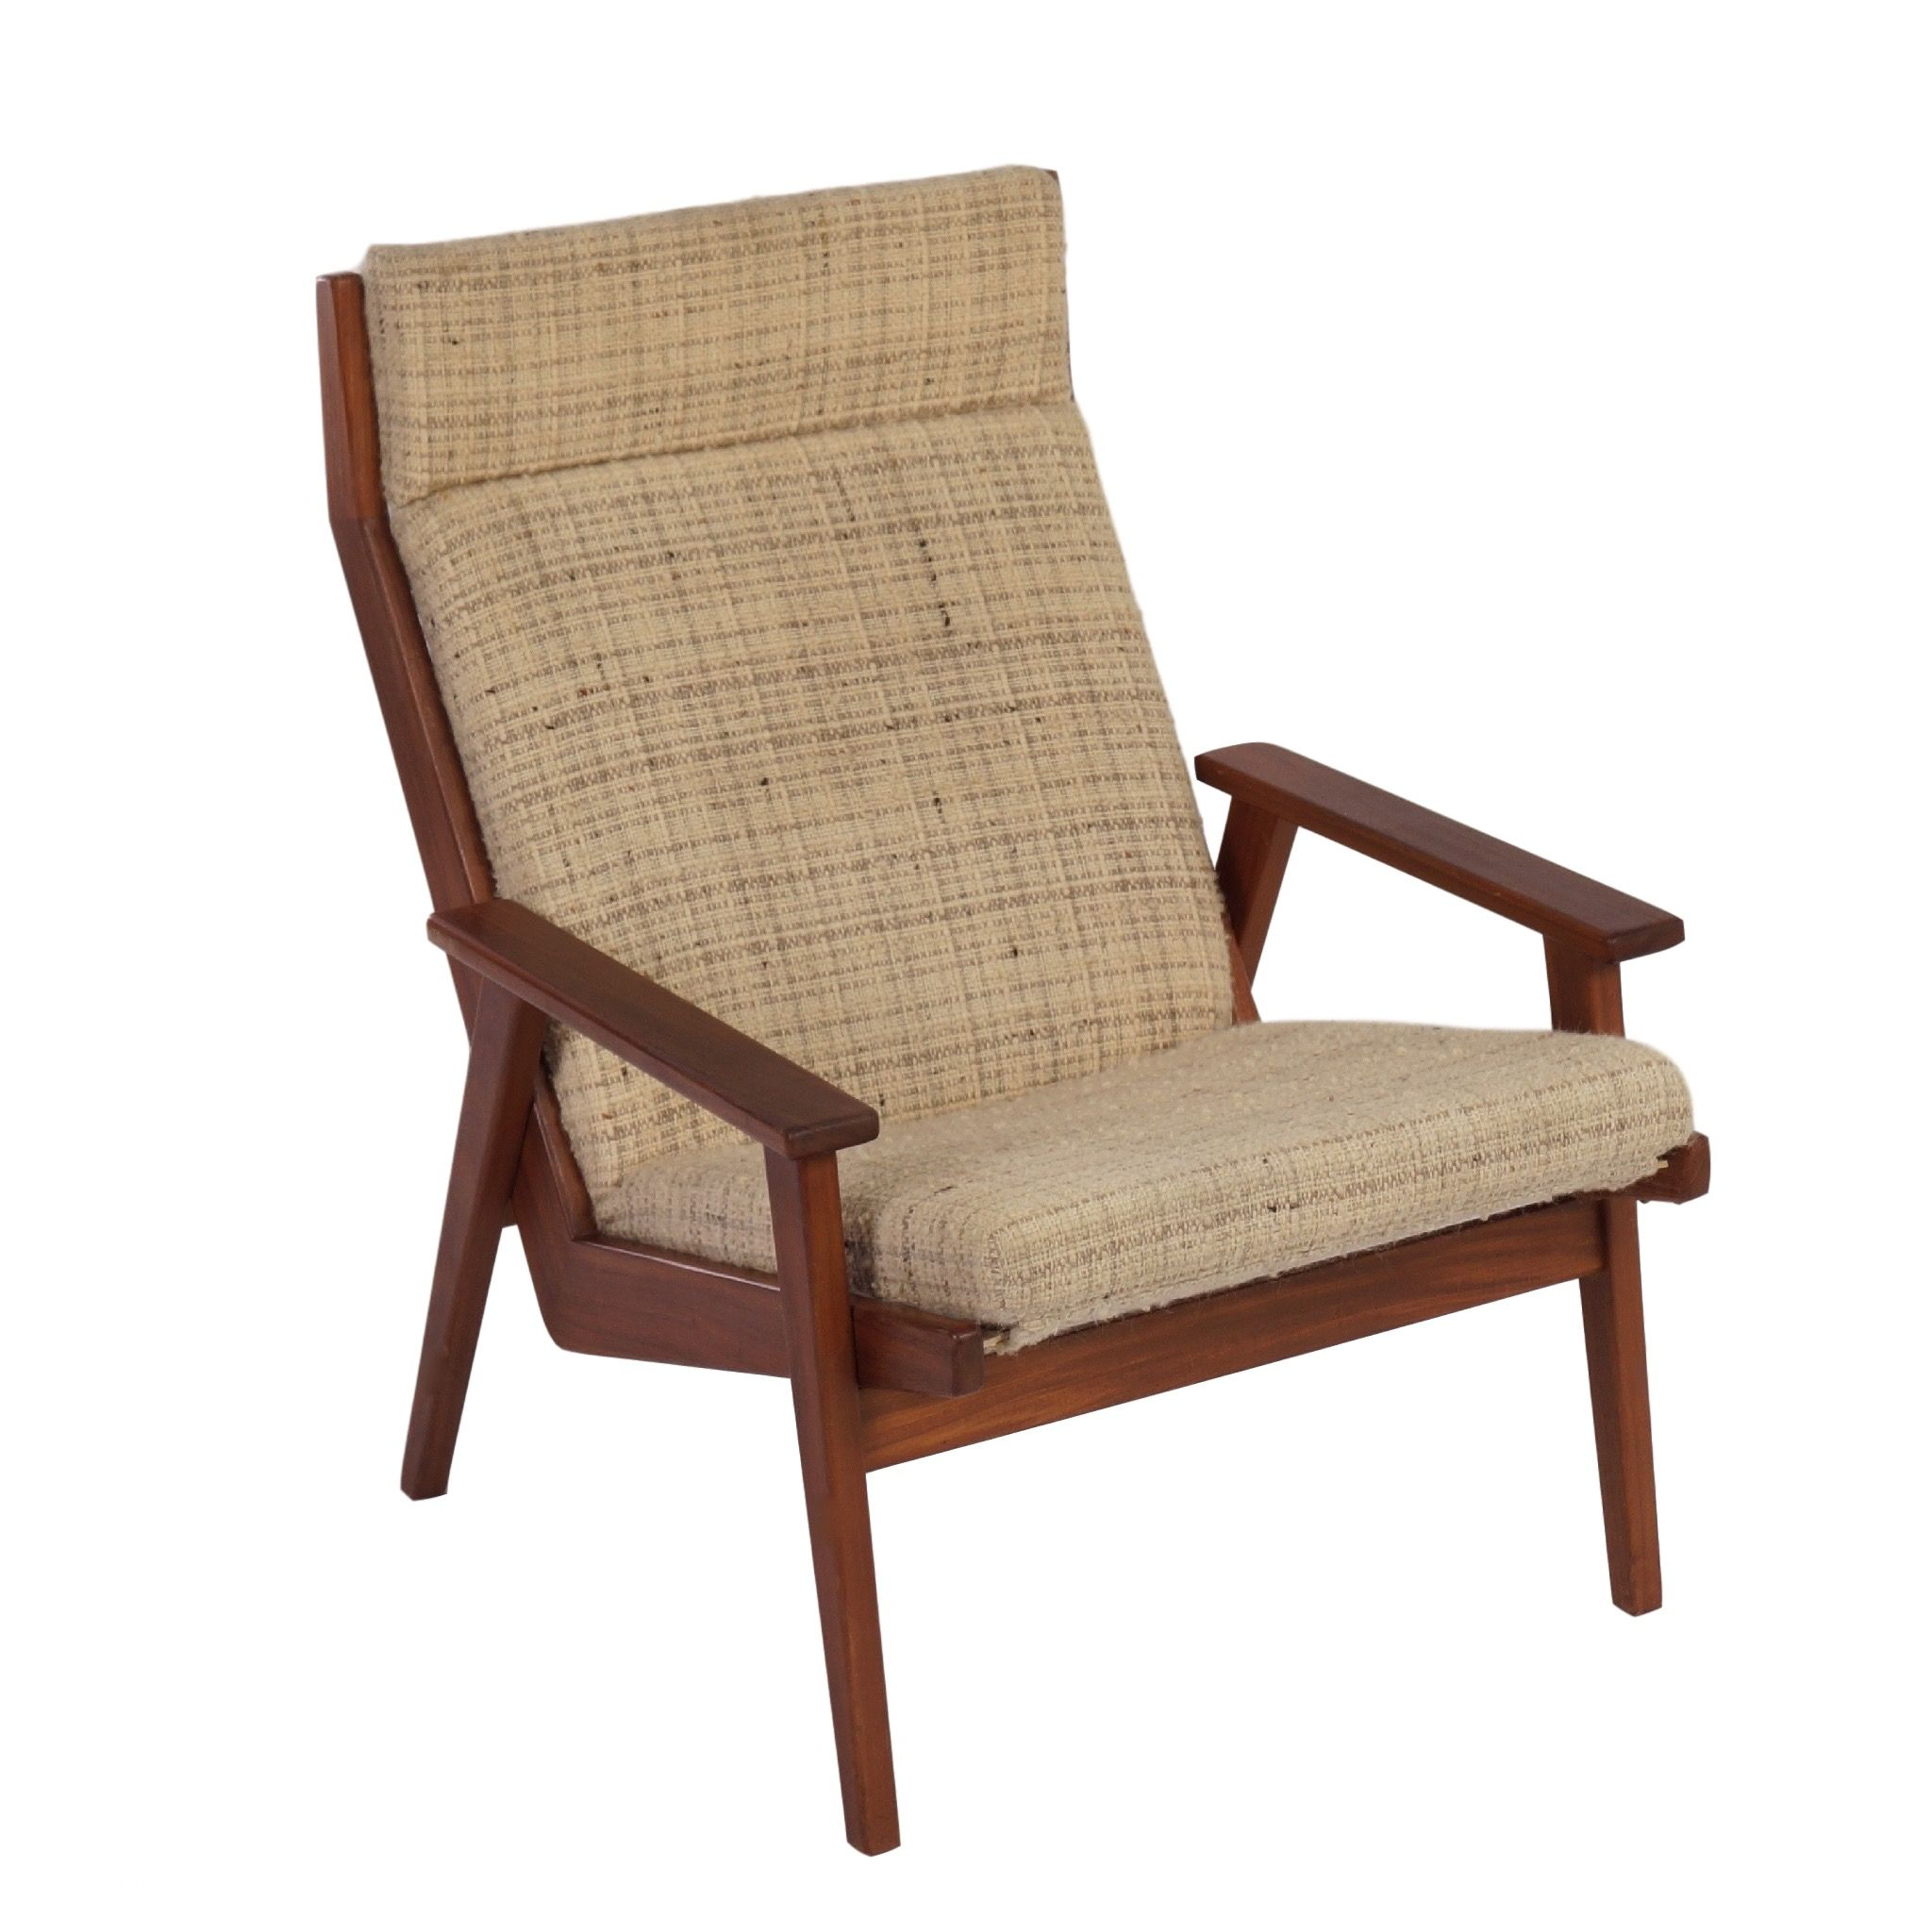 Vintage Rob Parry Easy Chair Gelderland Ztijl